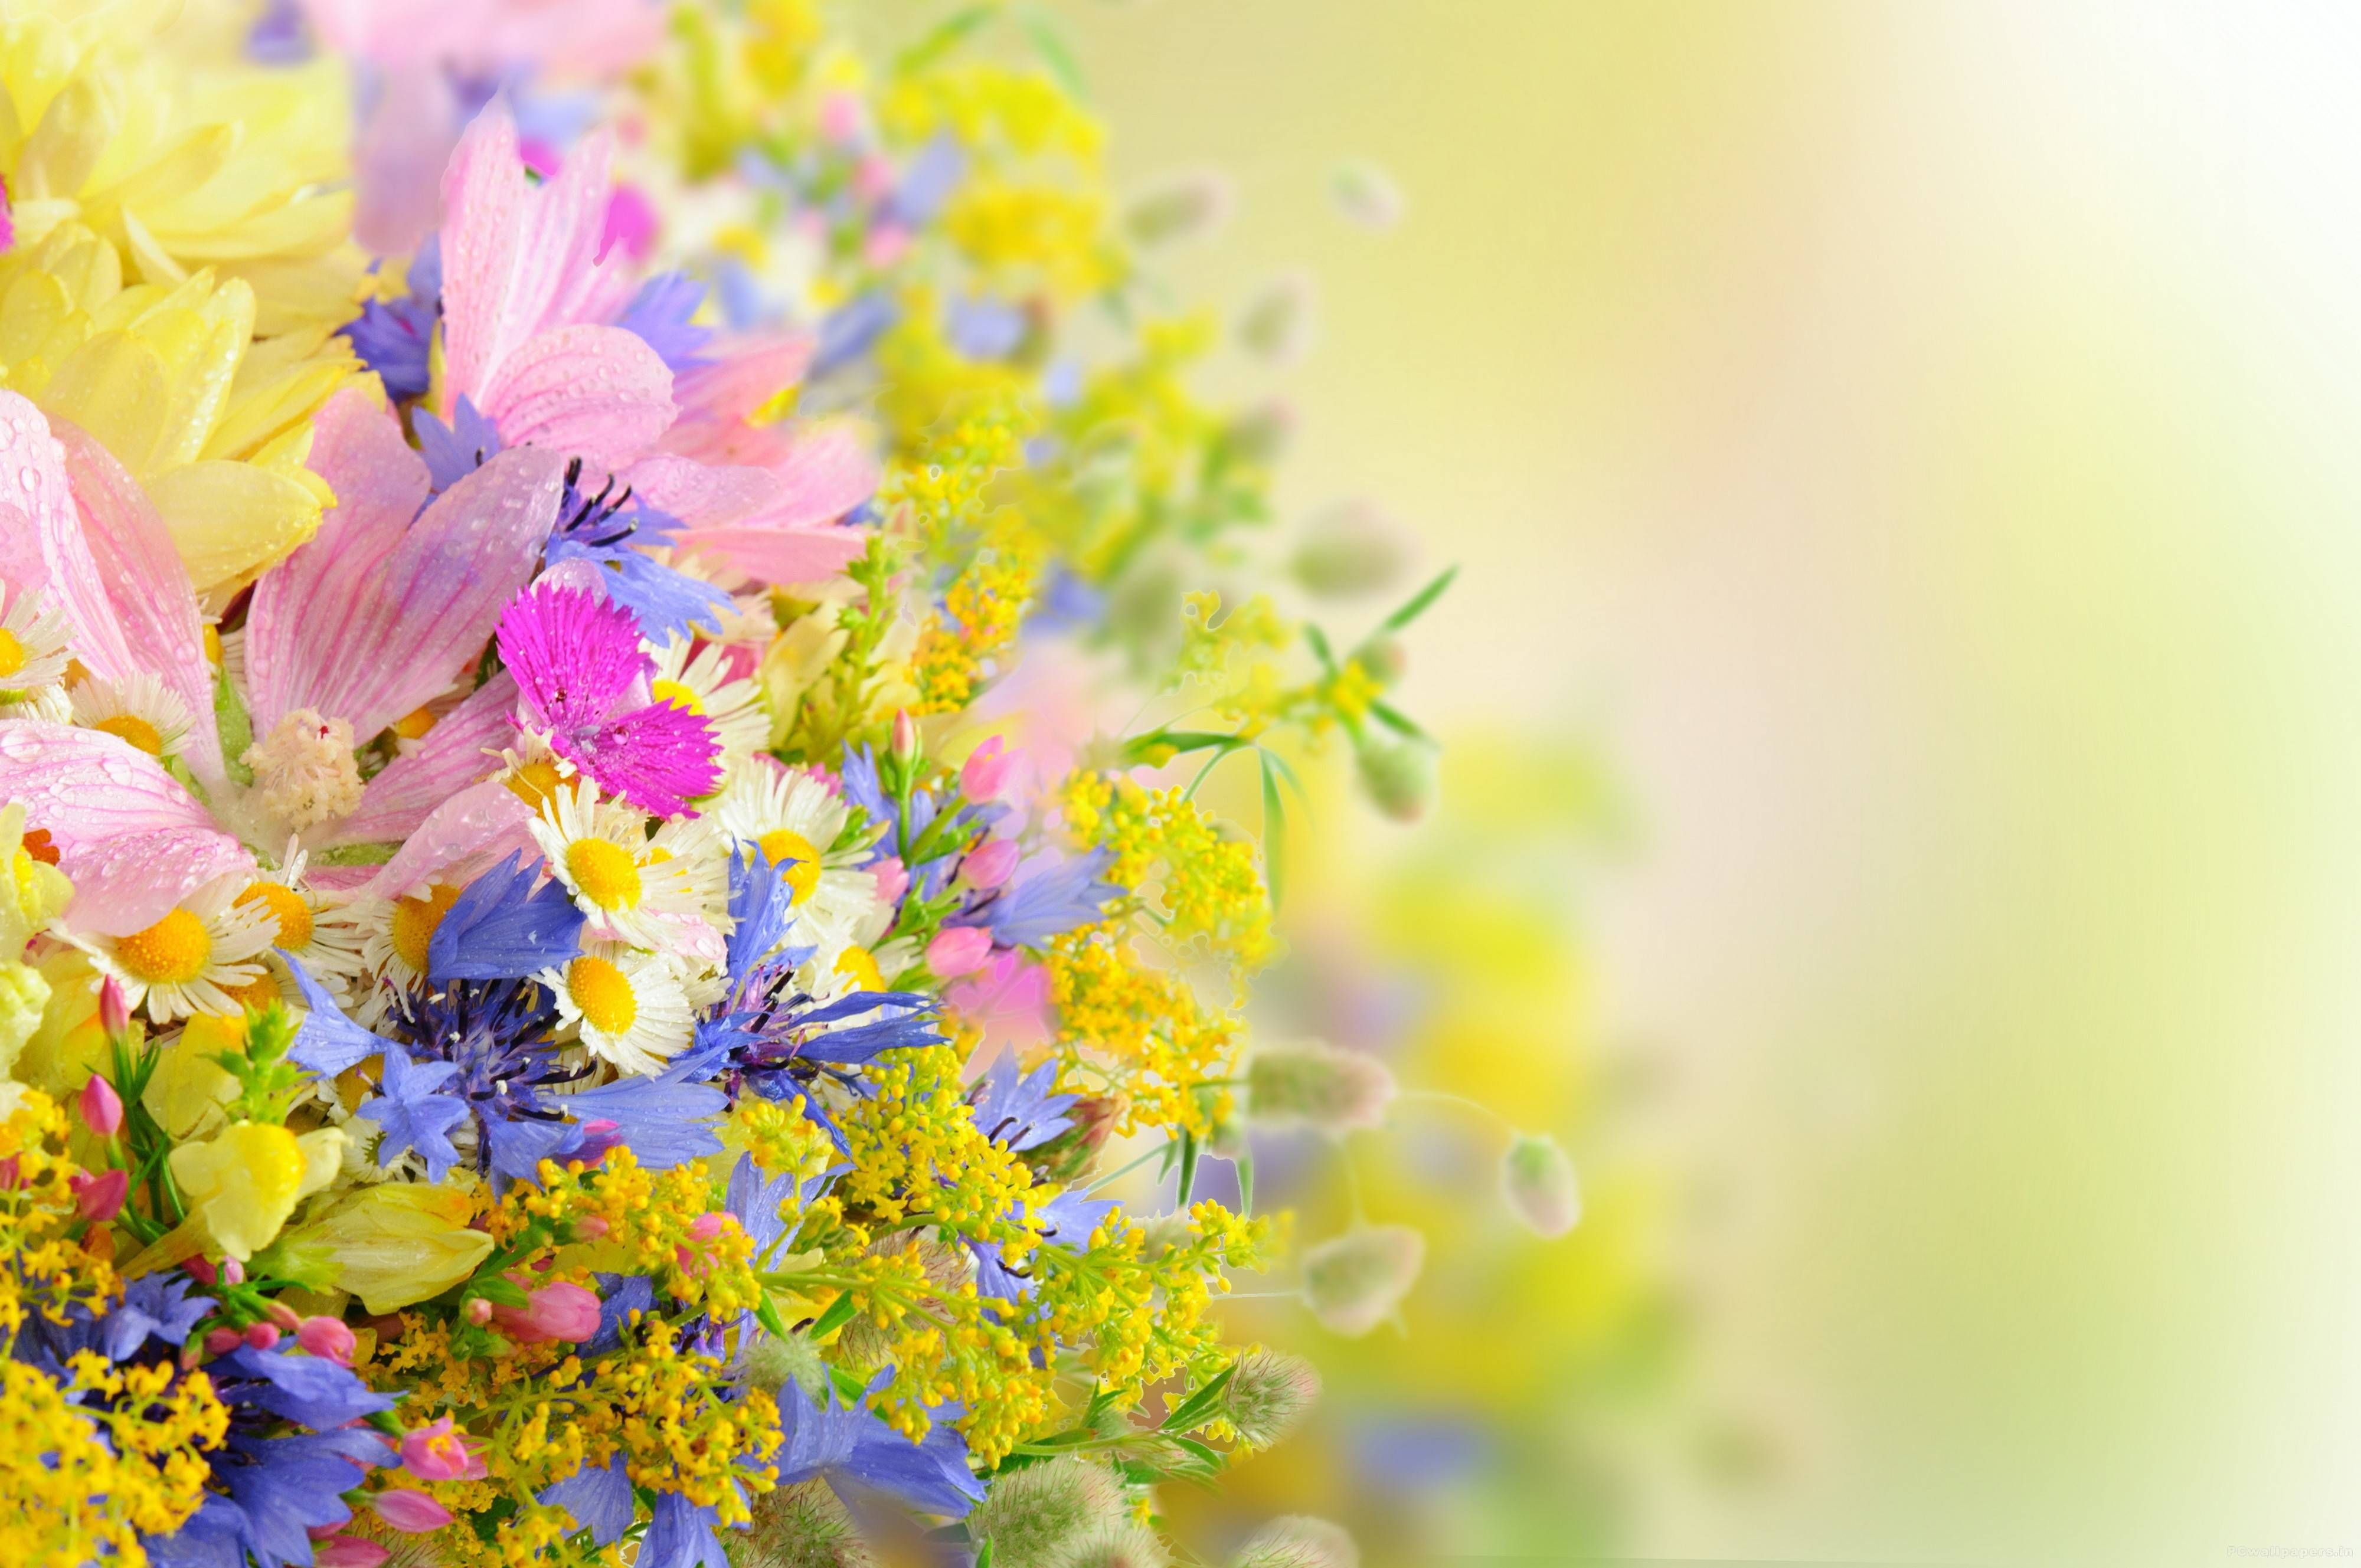 Backgrounds Of Flowers Wallpaper Cave